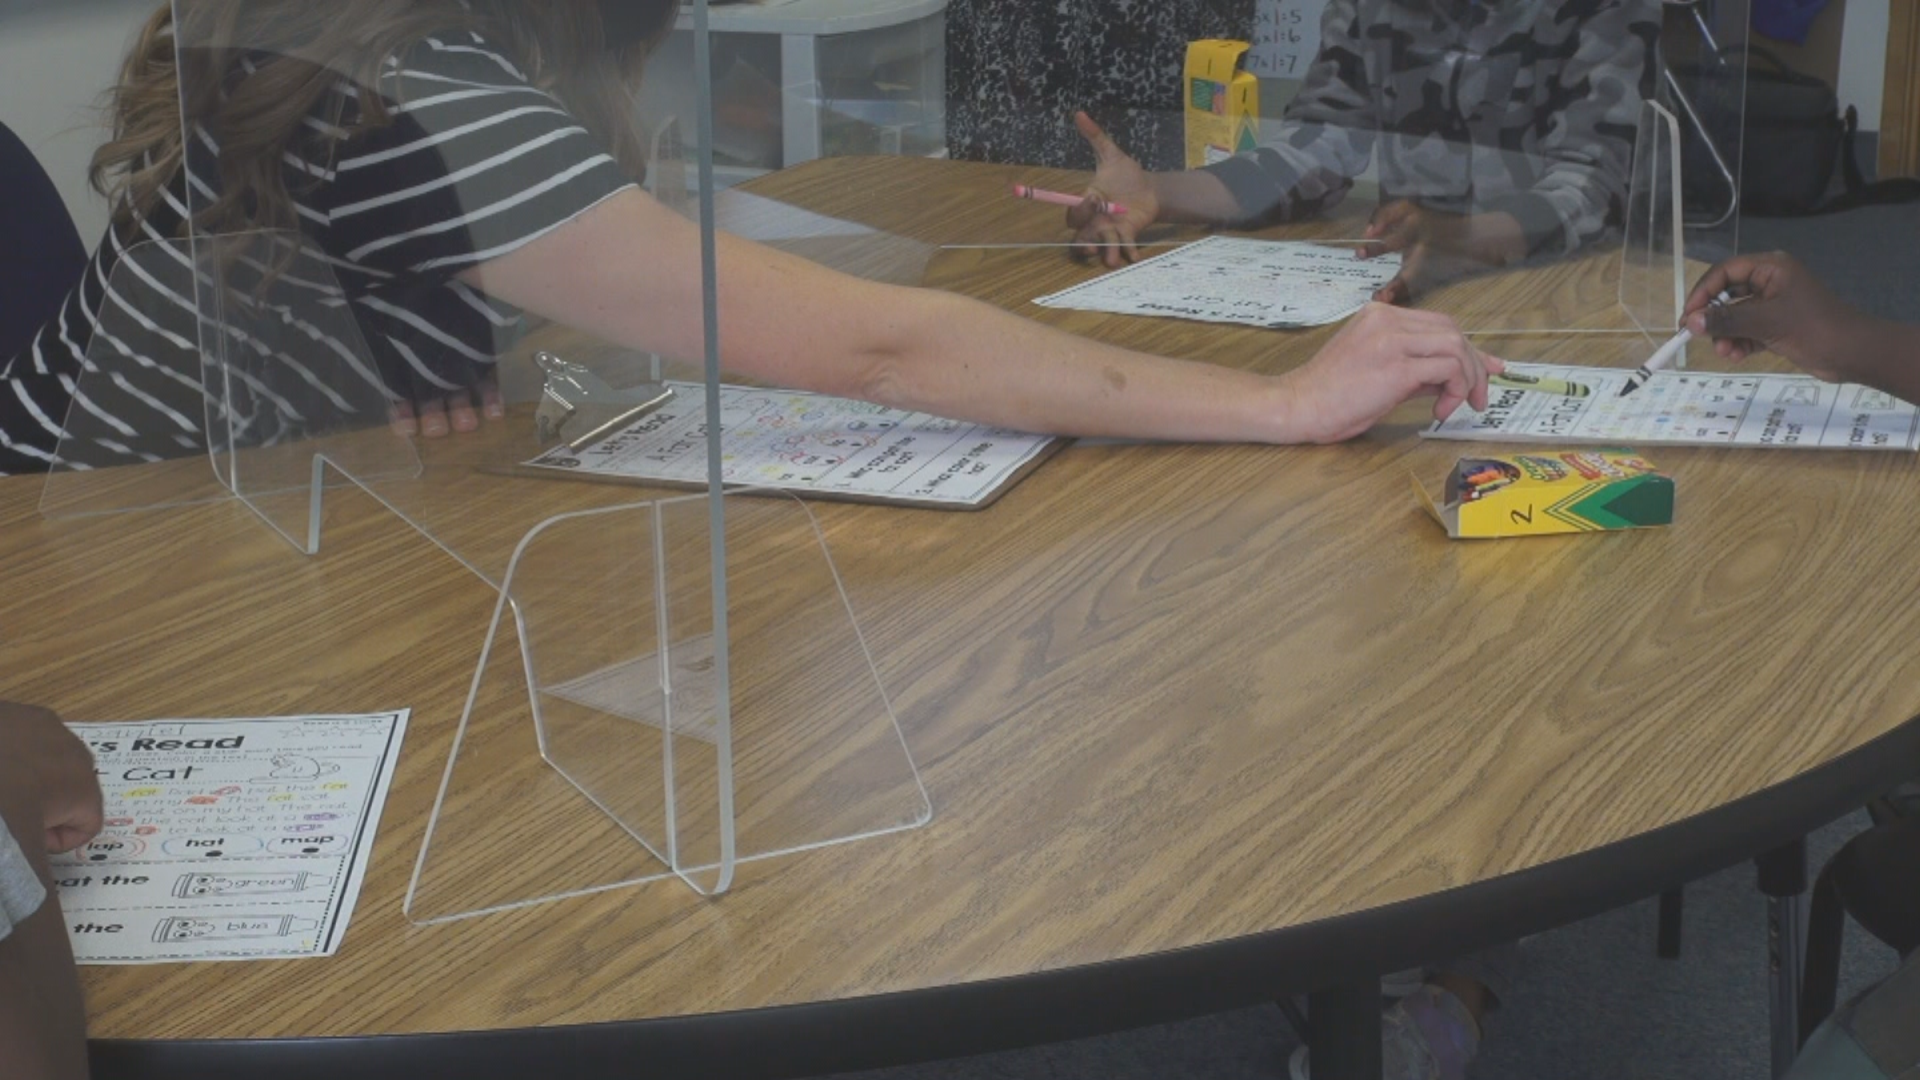 For 30 minutes a day, Laura Pawlowich works with a small group of students to help them learn English. With just her eyes visible, she said she has to work harder to communicate with her students and to make sure they're understanding what she is teaching. (KUTV)